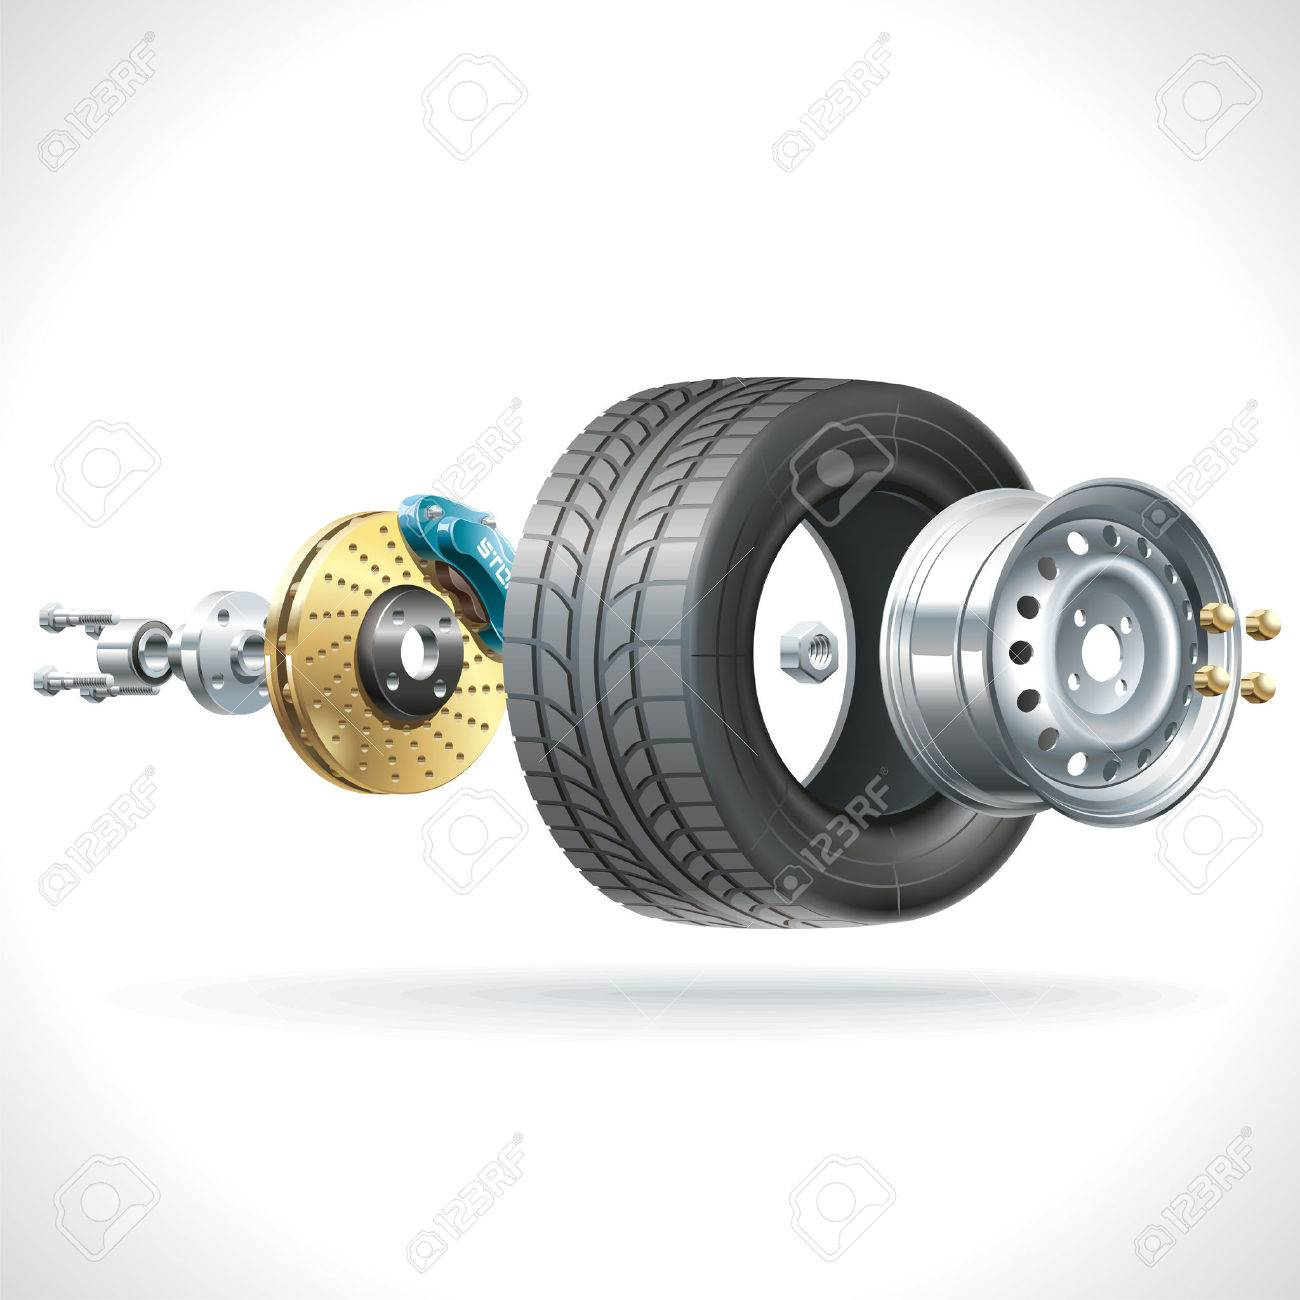 Anatomy Of A Vehicle Wheel Disposed On One Axis Royalty Free ...